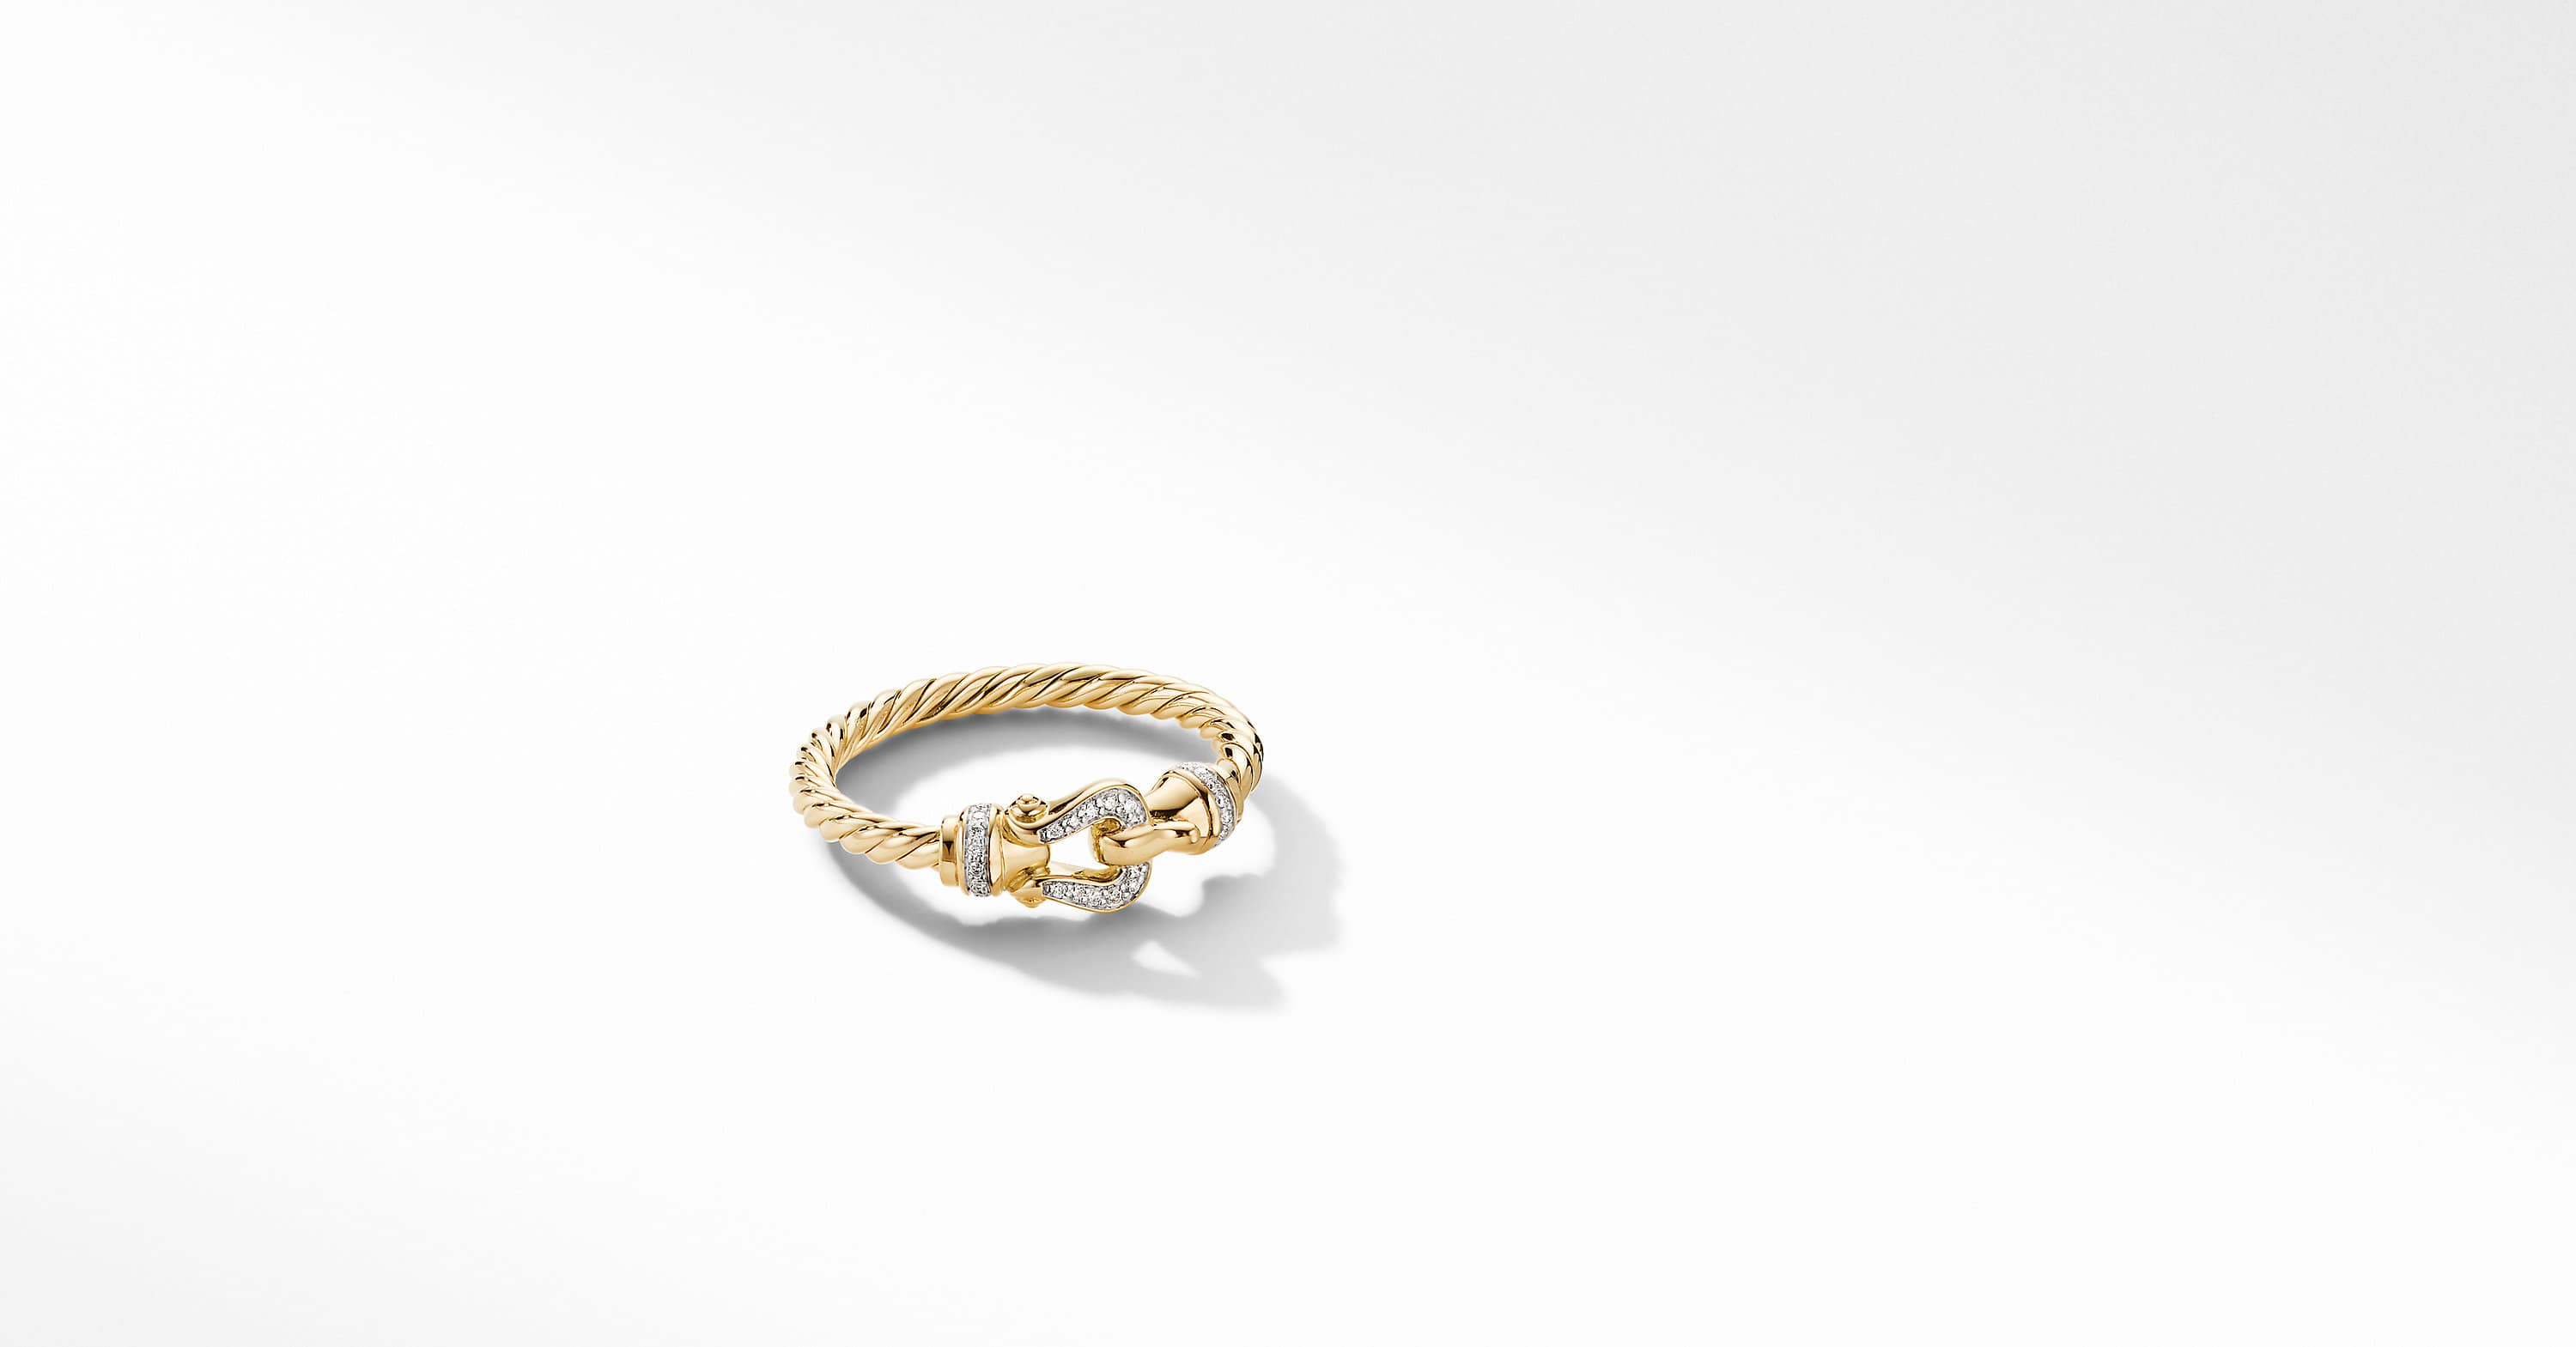 Petite Buckle Ring in 18K Yellow Gold with Diamonds